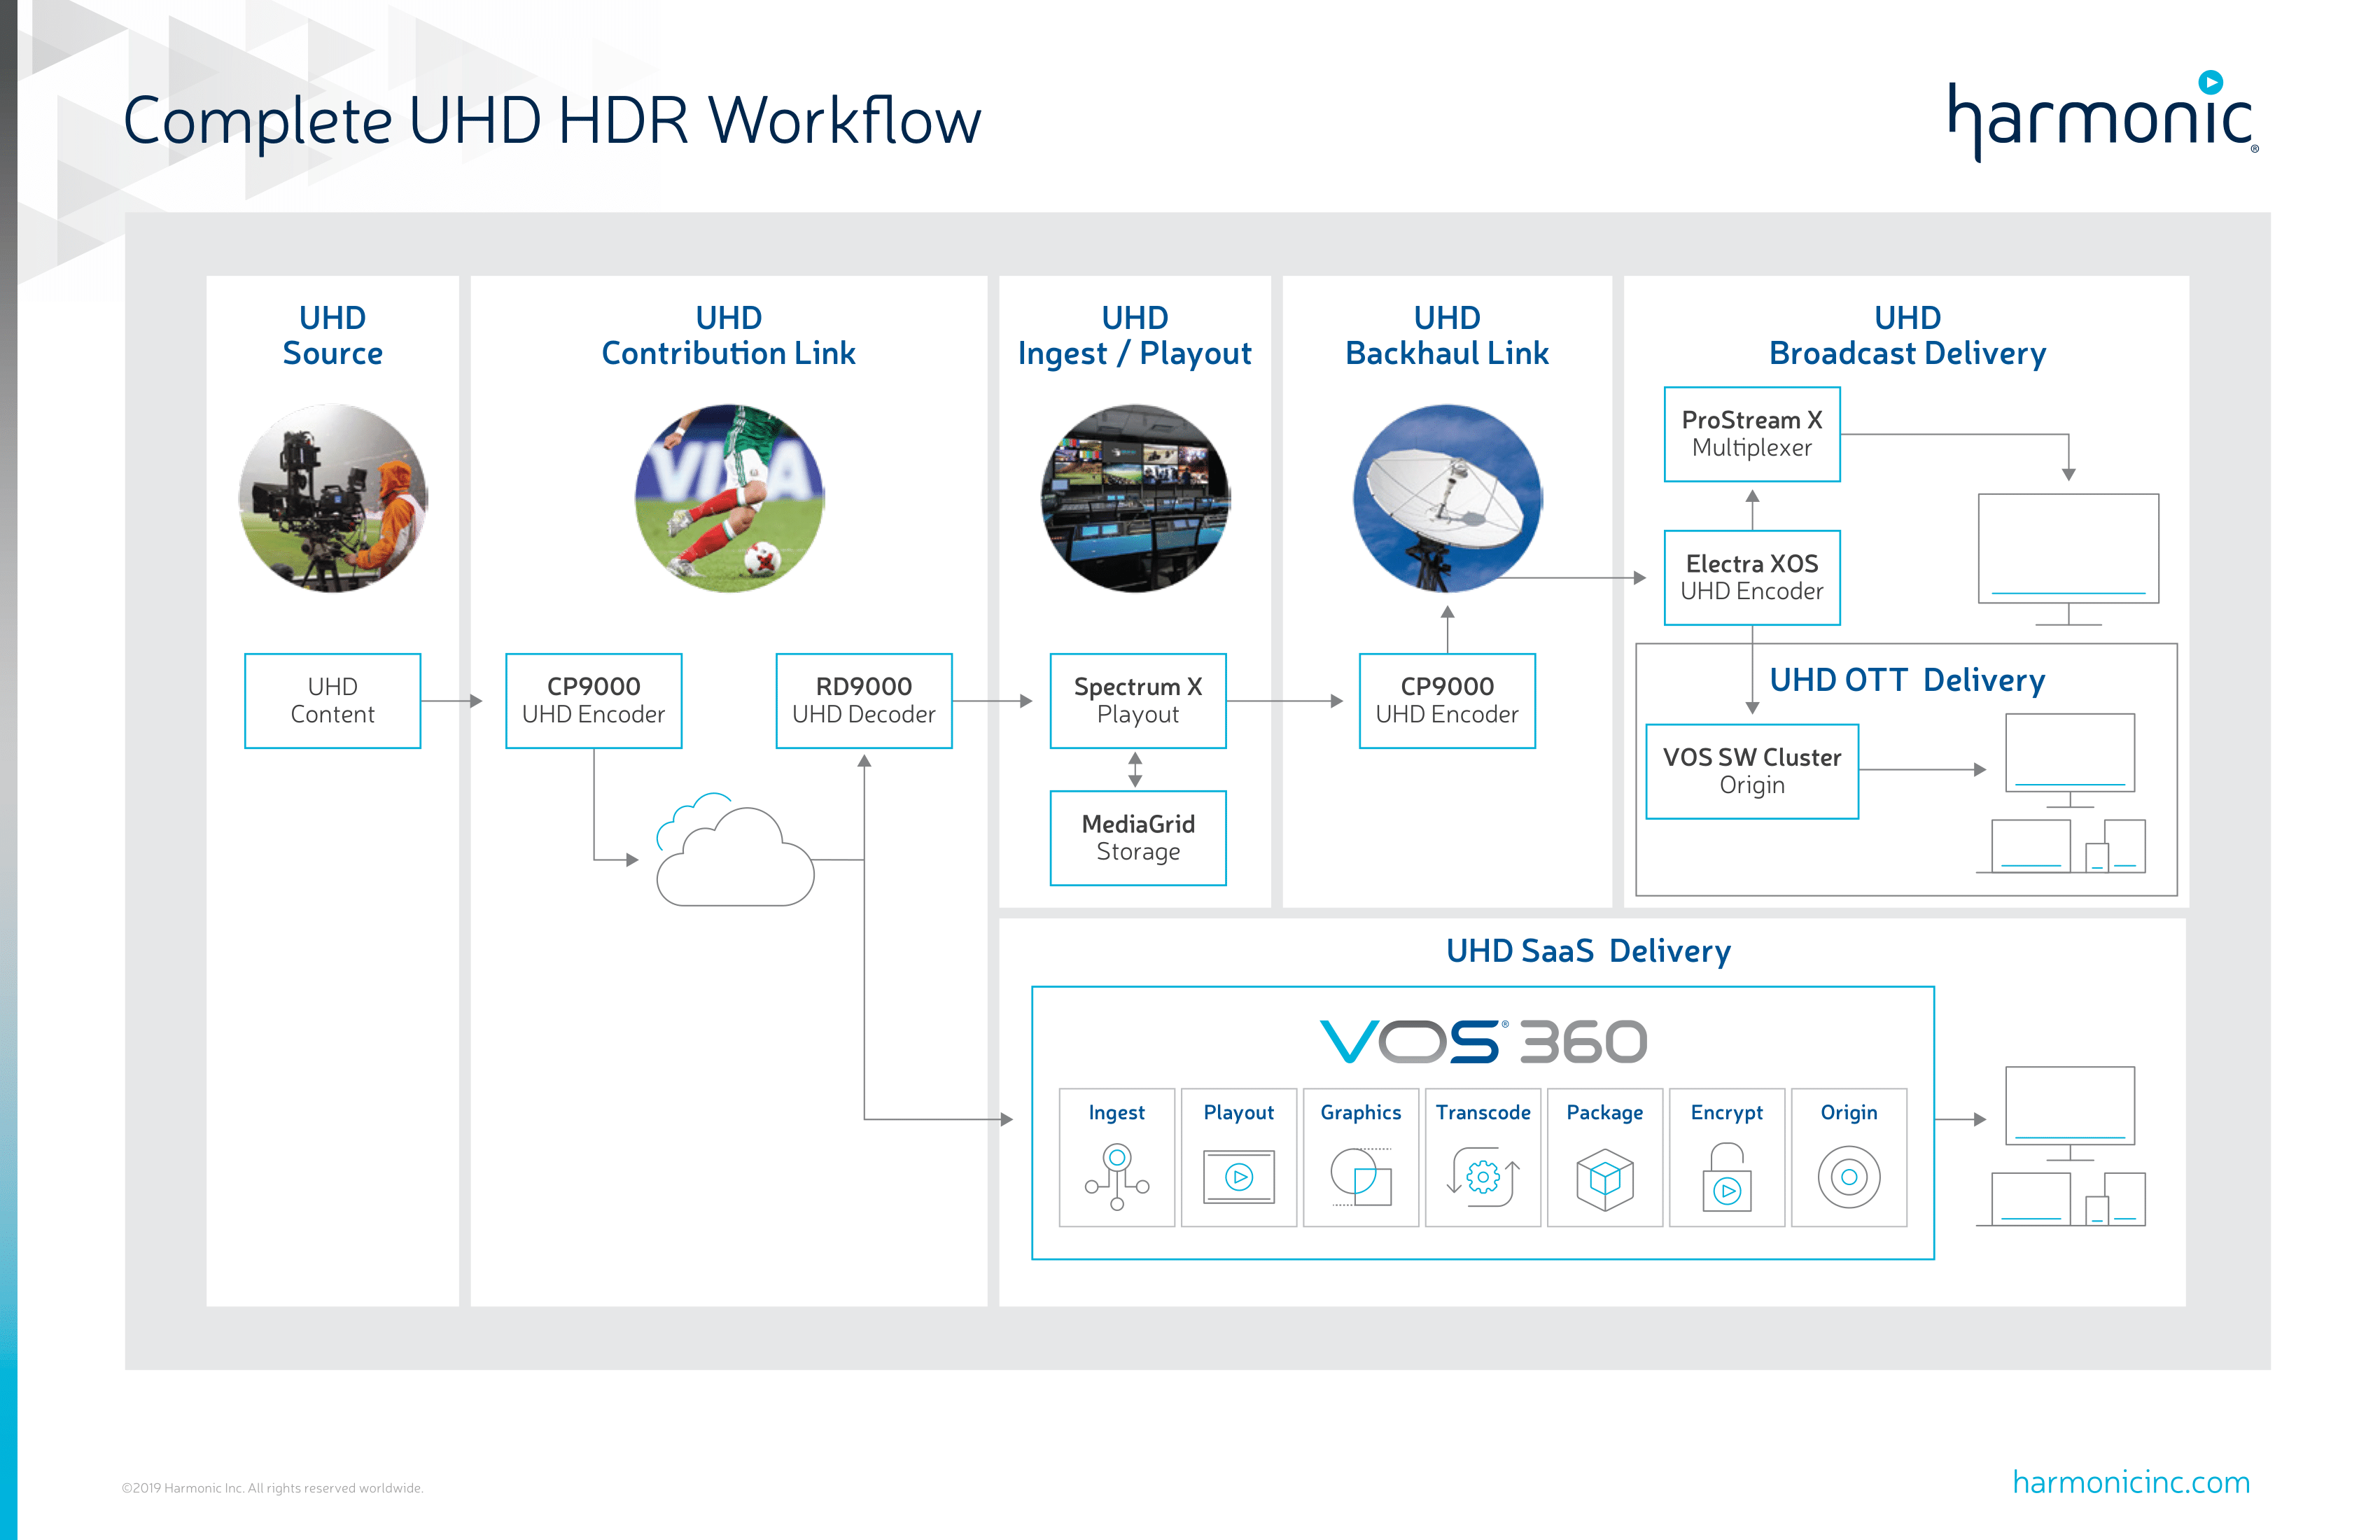 Complete UHD-HDR